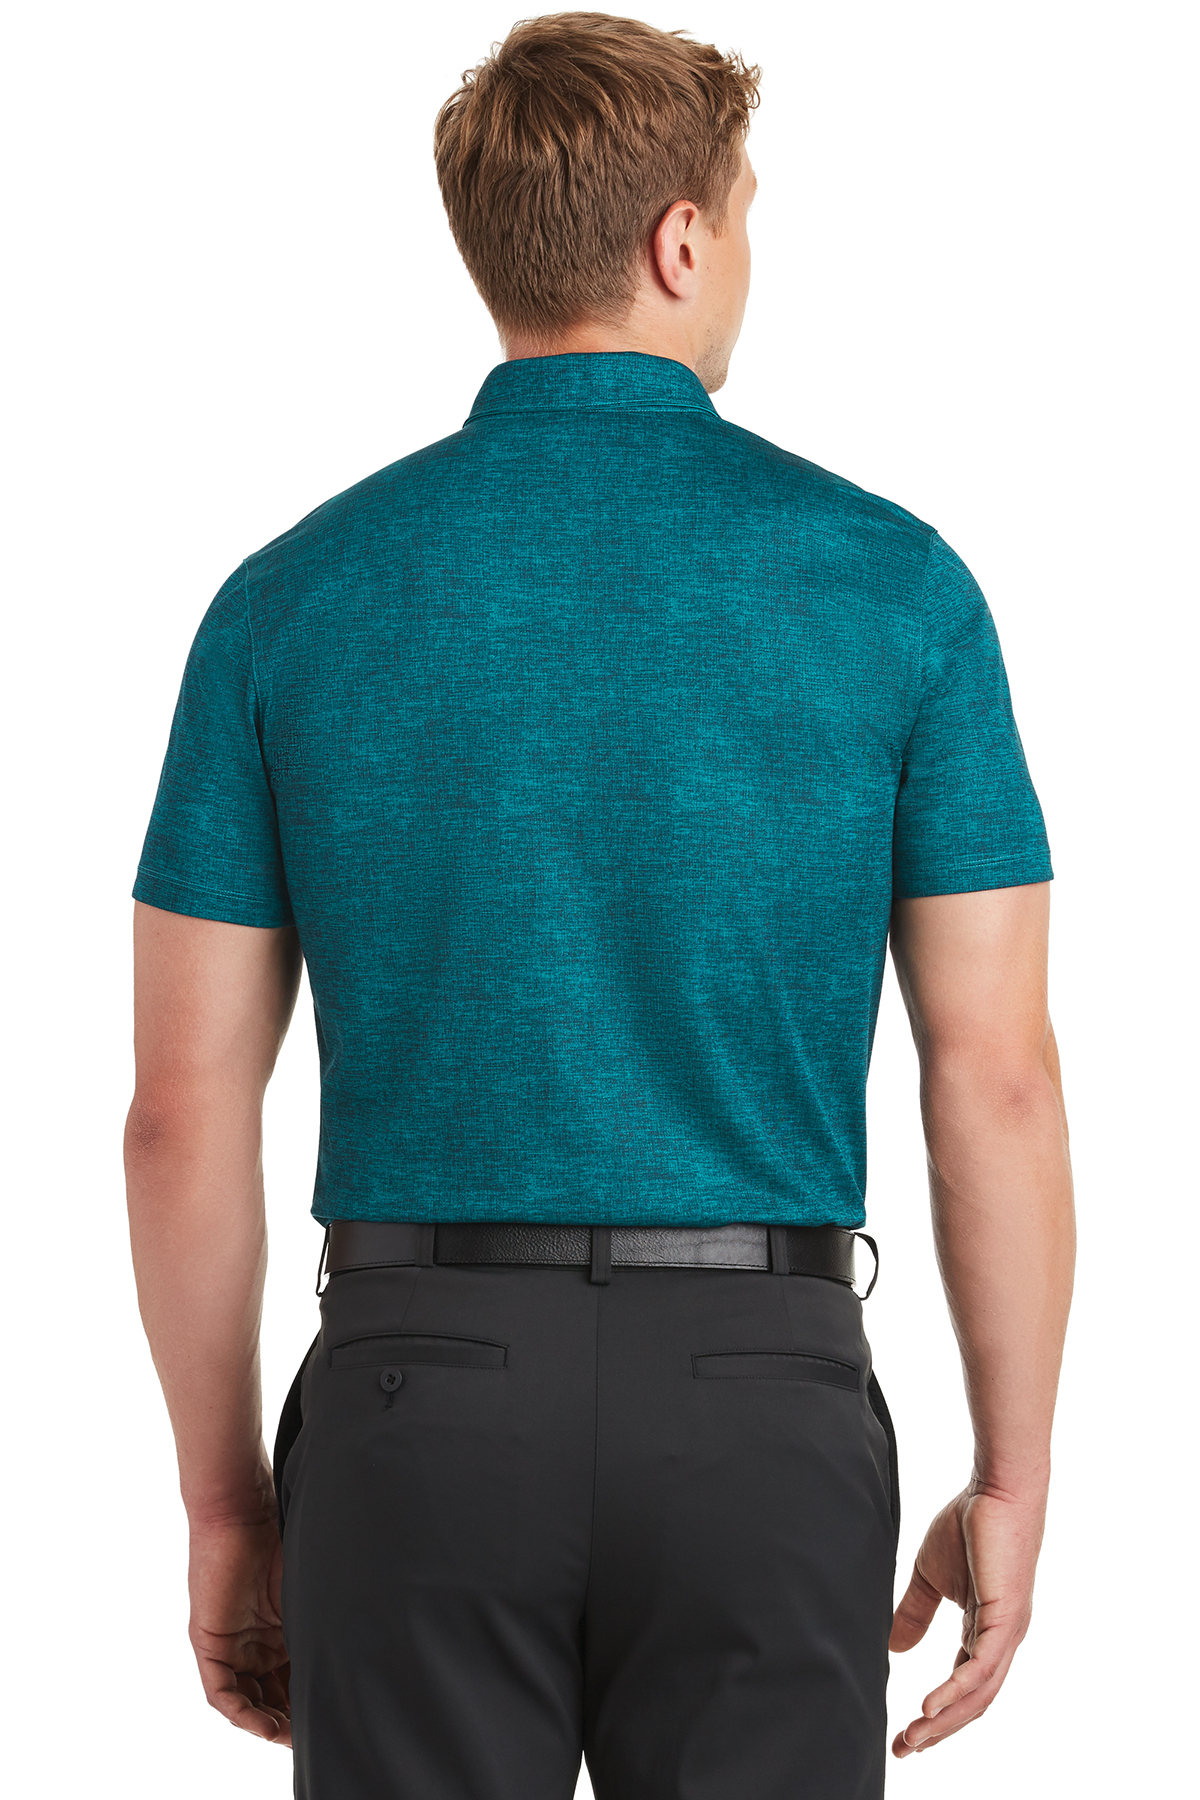 Crosshatch FIT Dri PoloPerformancePolosKnits FIT FIT